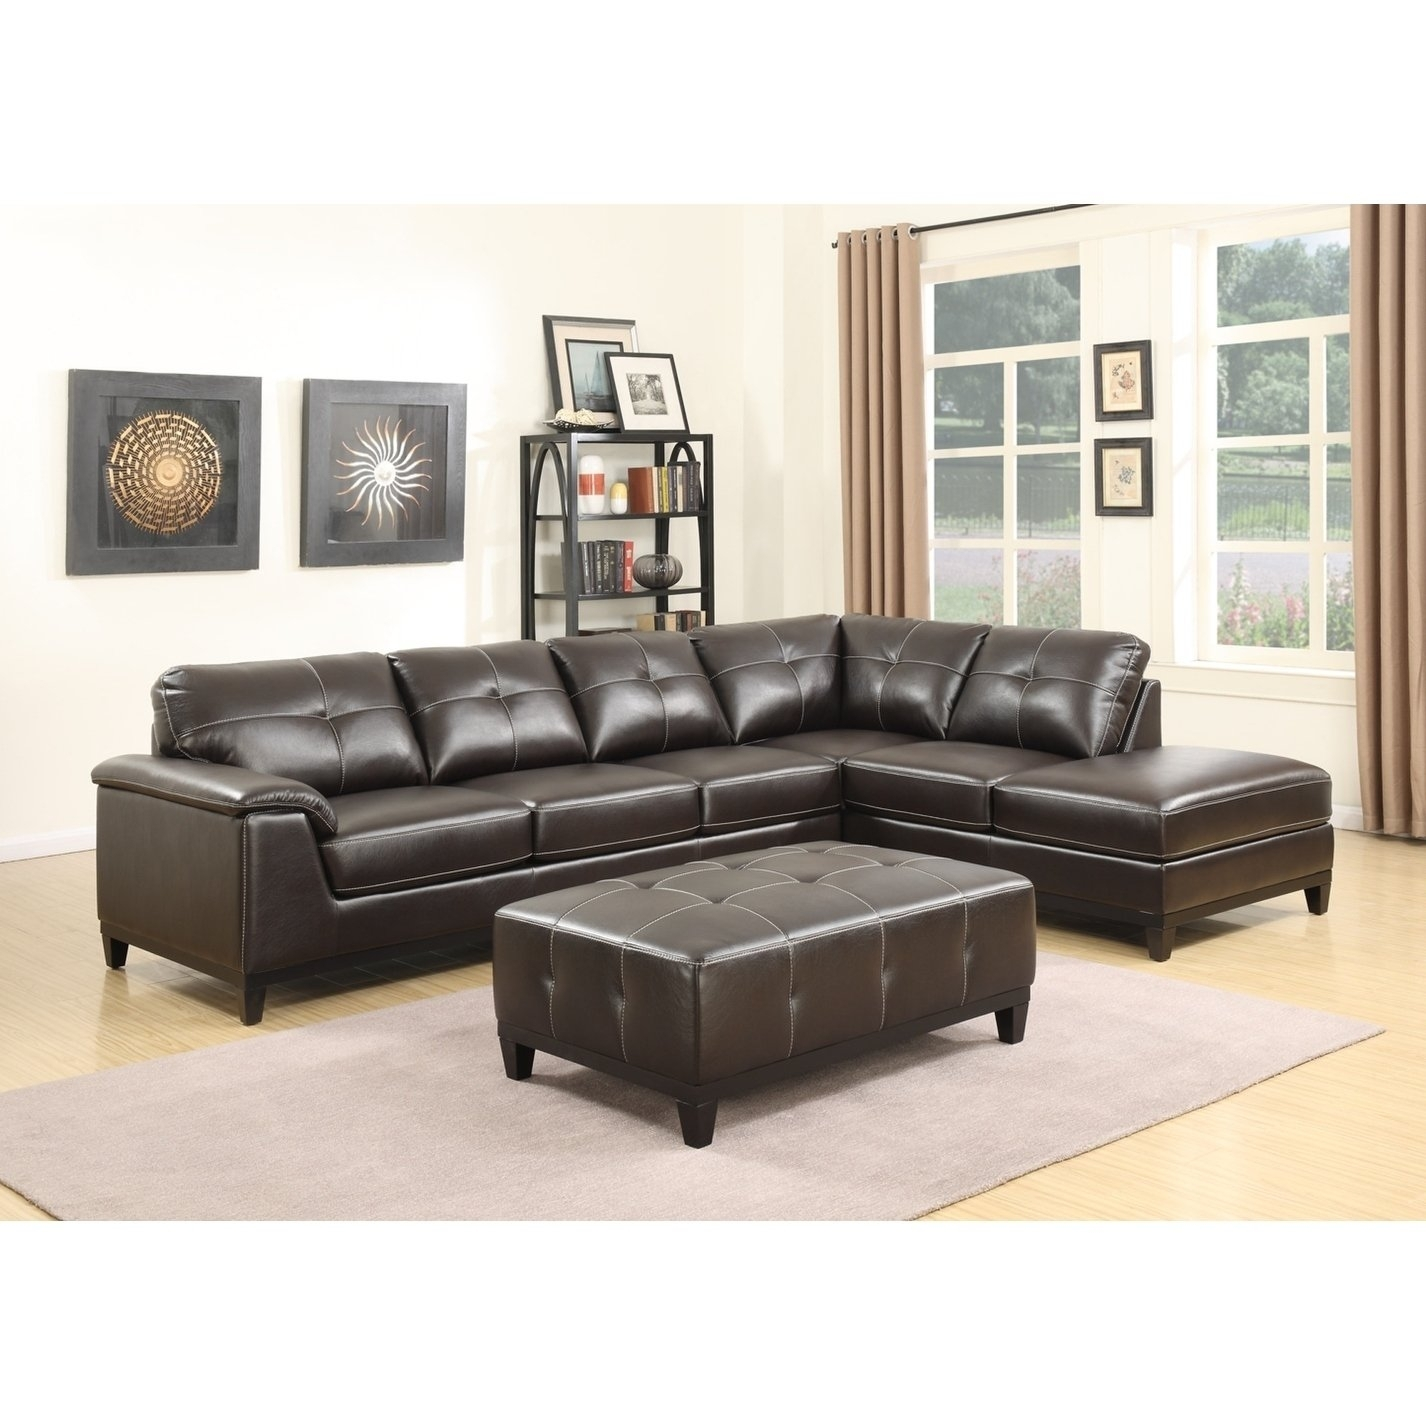 Shop Emerald Home Marquis 3 Piece Sectional With 6 Seats – Free For Haven Blue Steel 3 Piece Sectionals (View 18 of 25)